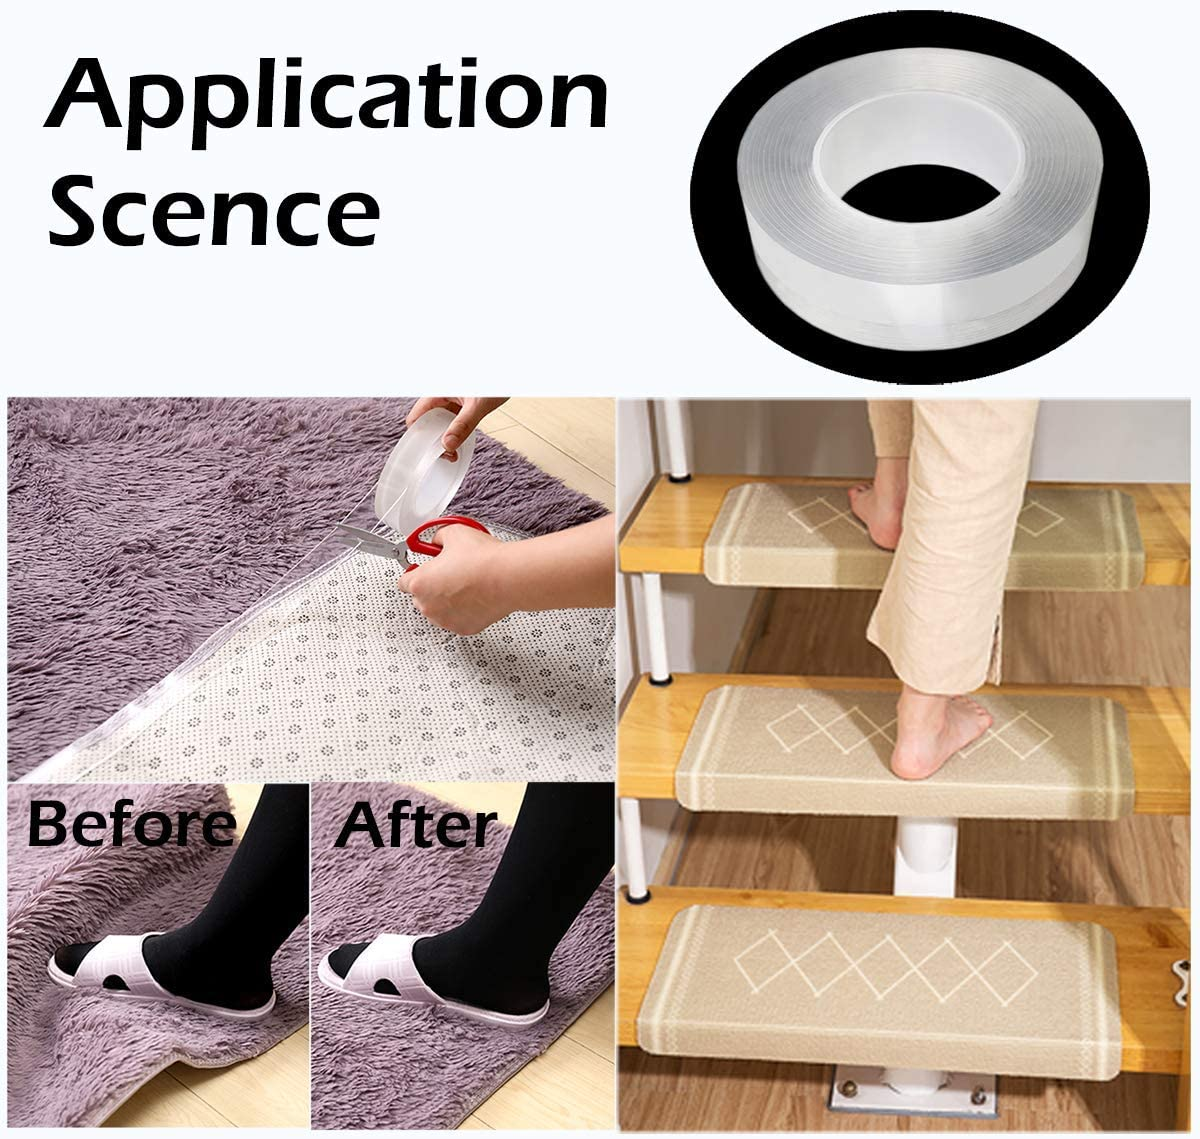 10 ft 2 Pack Home Kitchen Traceless Washable Adhesive Tape Caulk for Bathtub Bathroom Shower Toilet Kitchen Wall Sealing